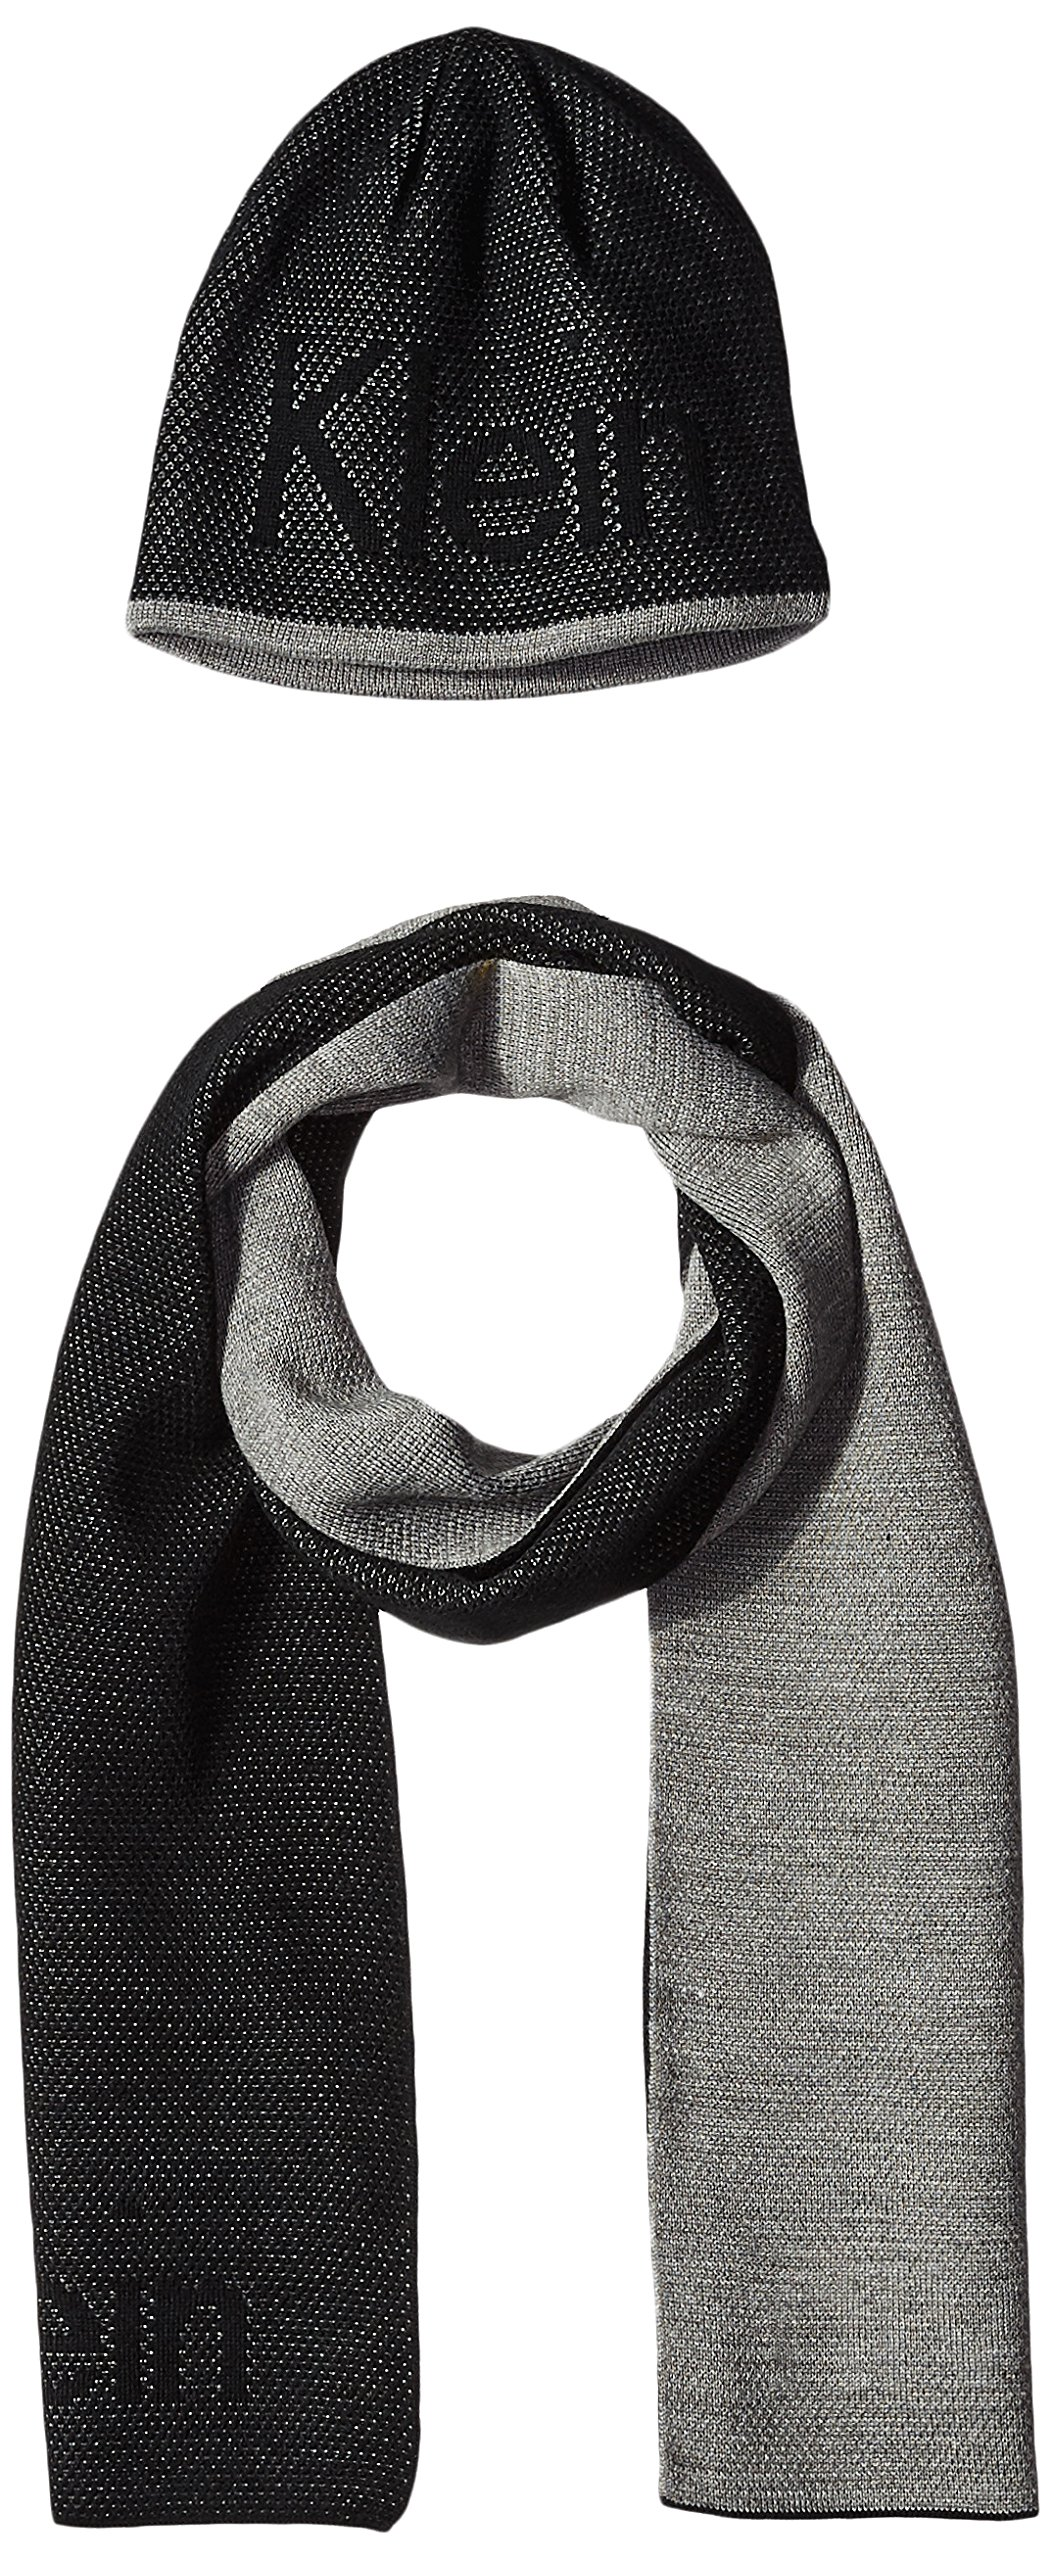 Calvin Klein Men's Hat and Scarf Set, Black/Light Gray, One Size